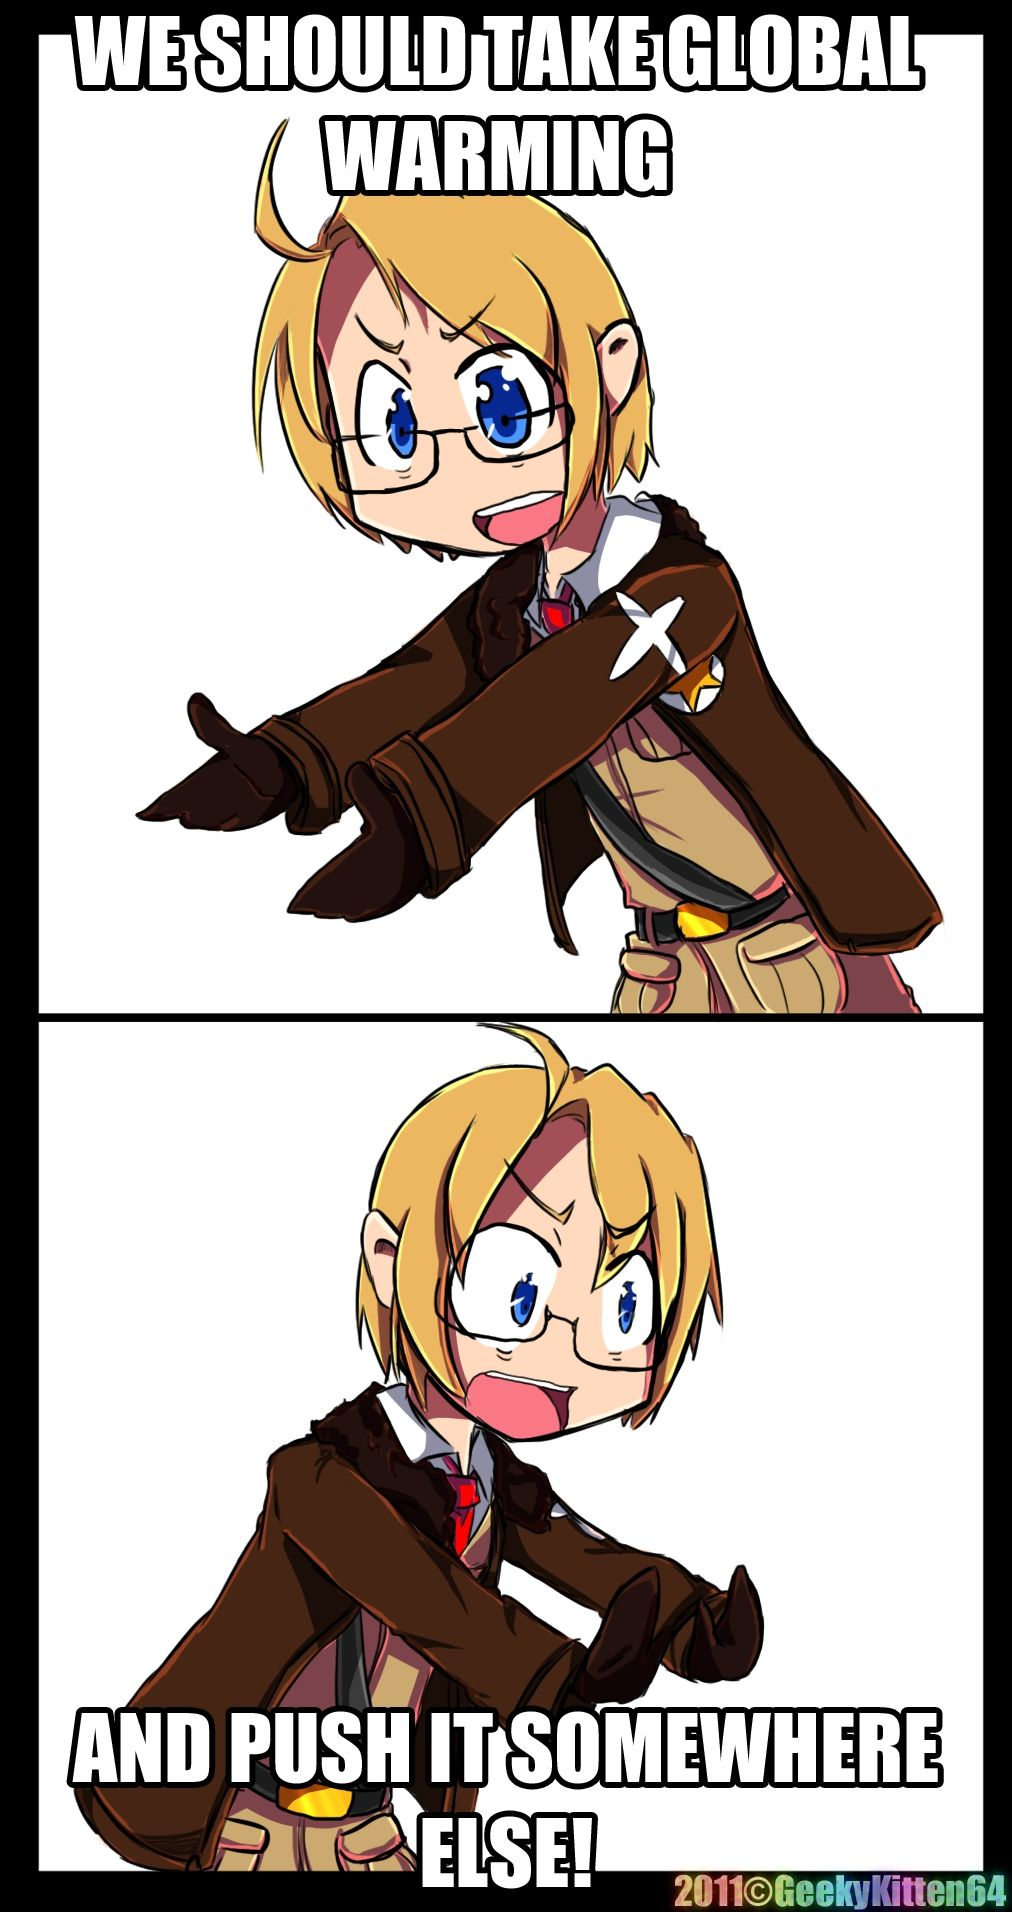 And America, as the hero, will accomplish this daunting feat lol! :D #Hetalia